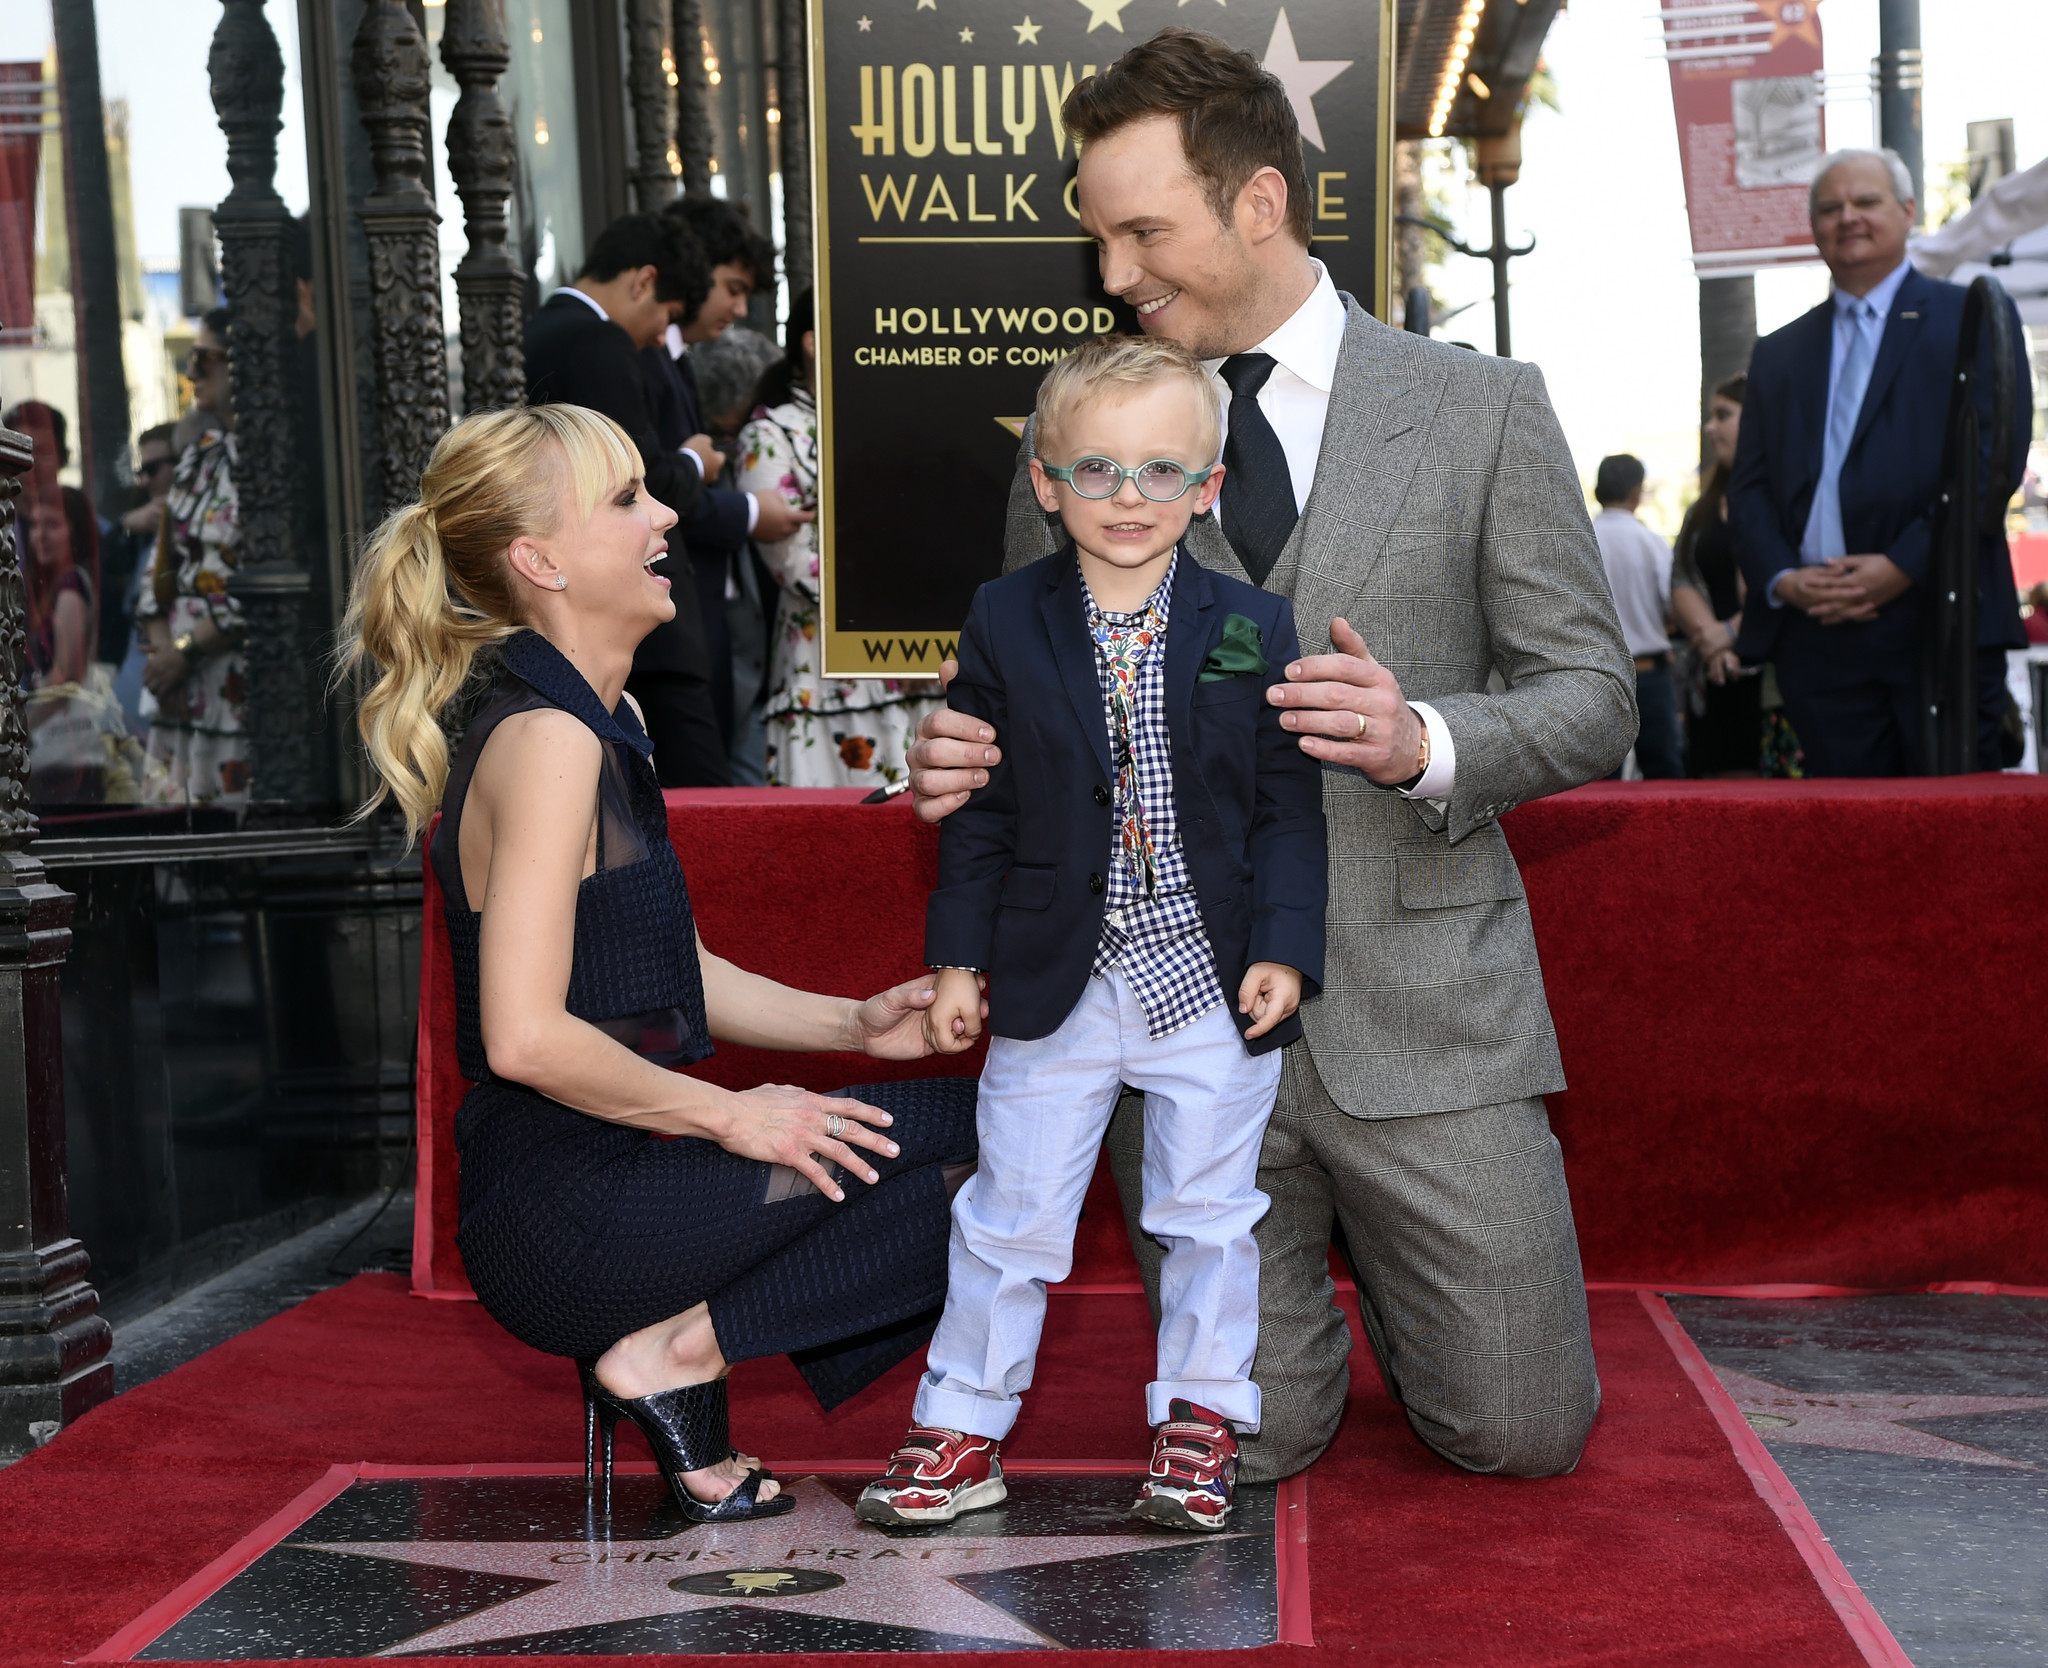 Actor Chris Pratt is joined by his wife, actress Anna Faris, and their son, Jack, during a ceremony to award Pratt a star on the Hollywood Walk of Fame on Friday, April 21, 2017, in Los Angeles.